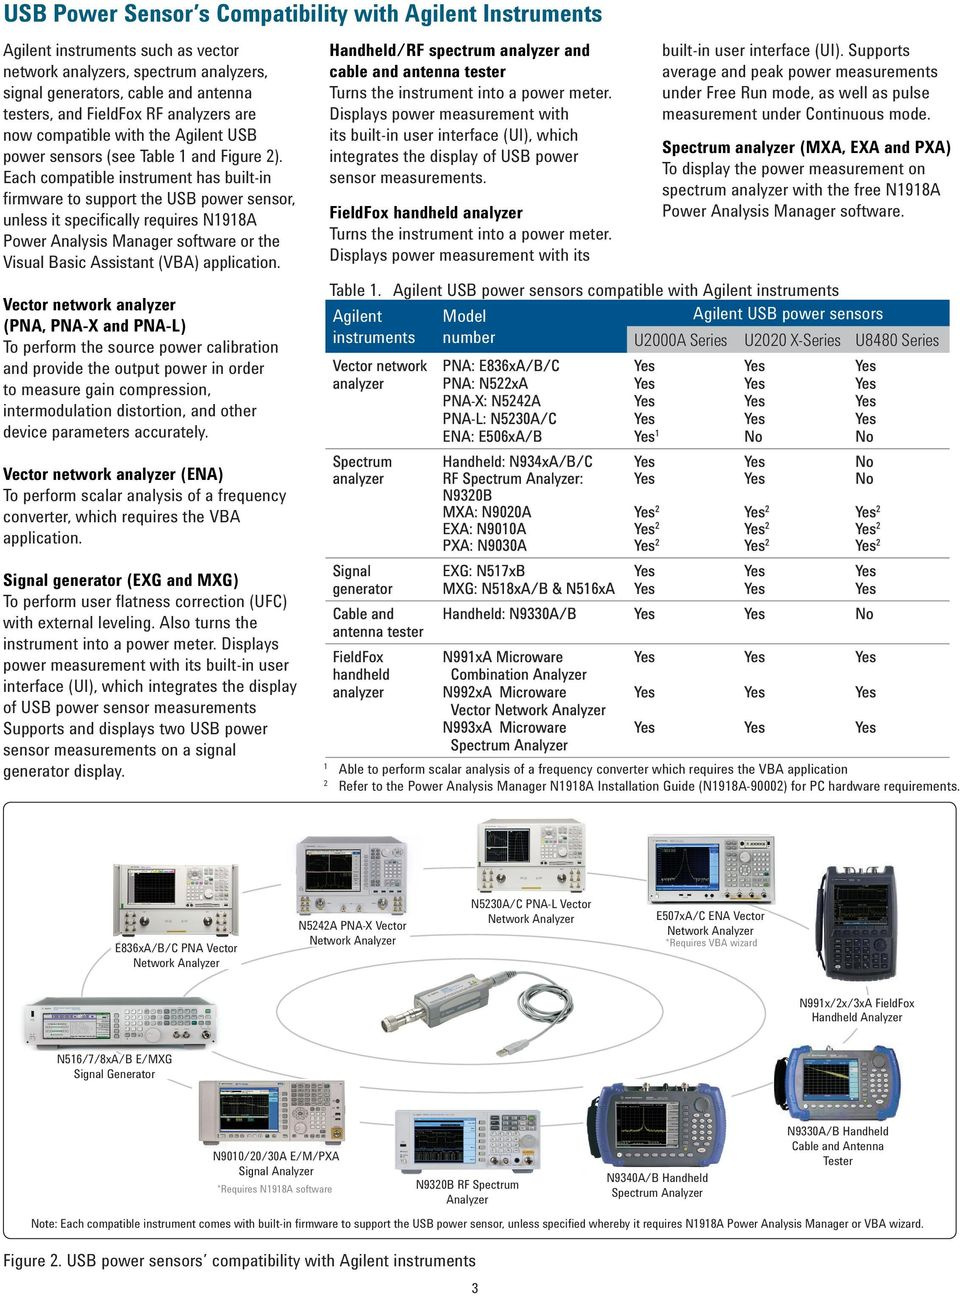 Agilent Compatibility of USB Power Sensors with Agilent Instruments